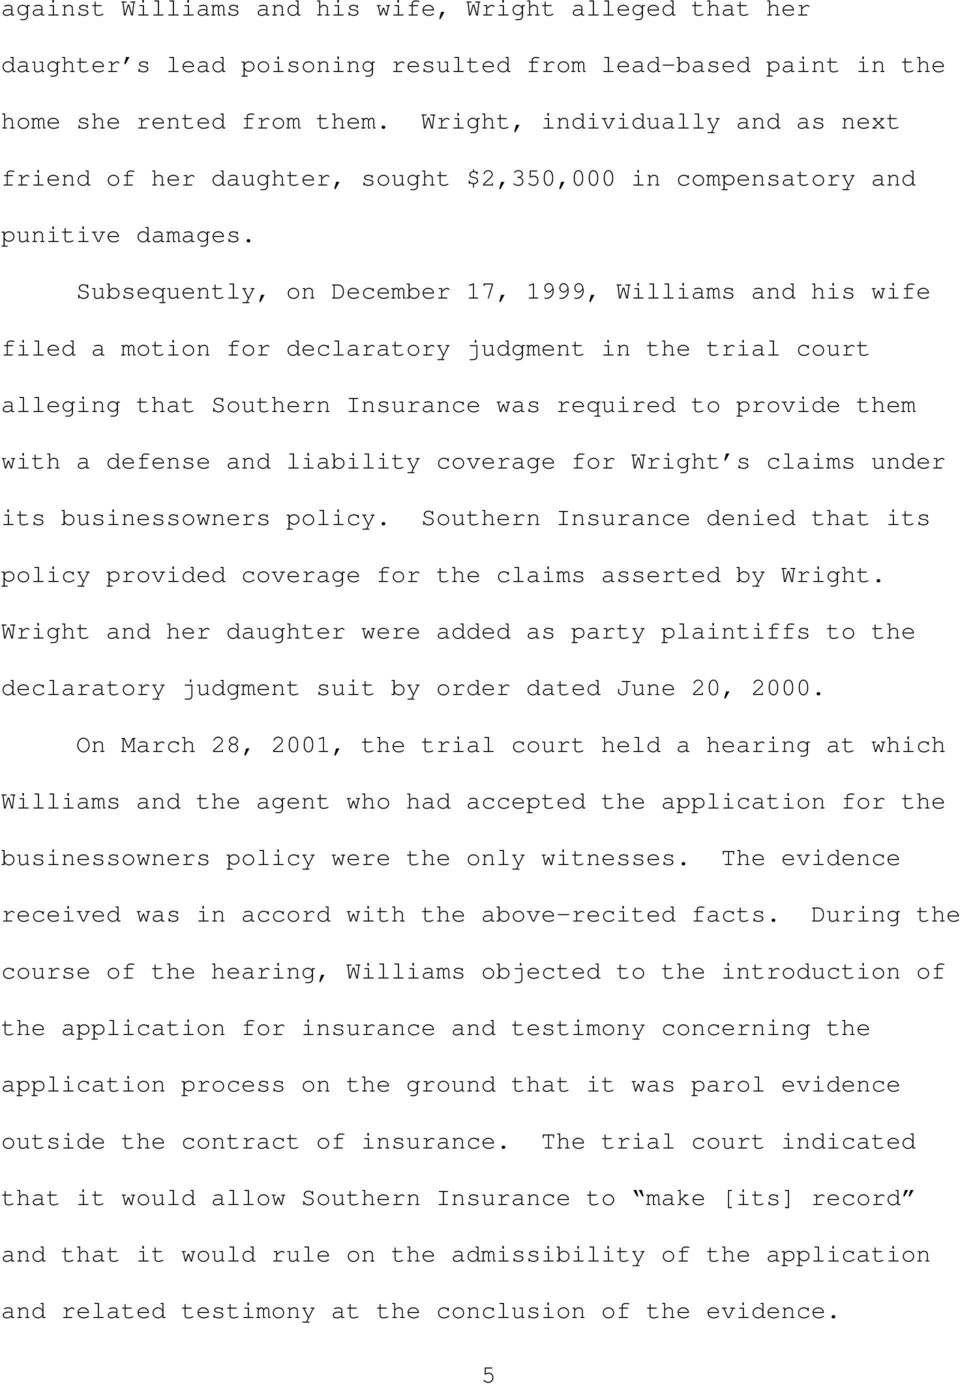 Subsequently, on December 17, 1999, Williams and his wife filed a motion for declaratory judgment in the trial court alleging that Southern Insurance was required to provide them with a defense and